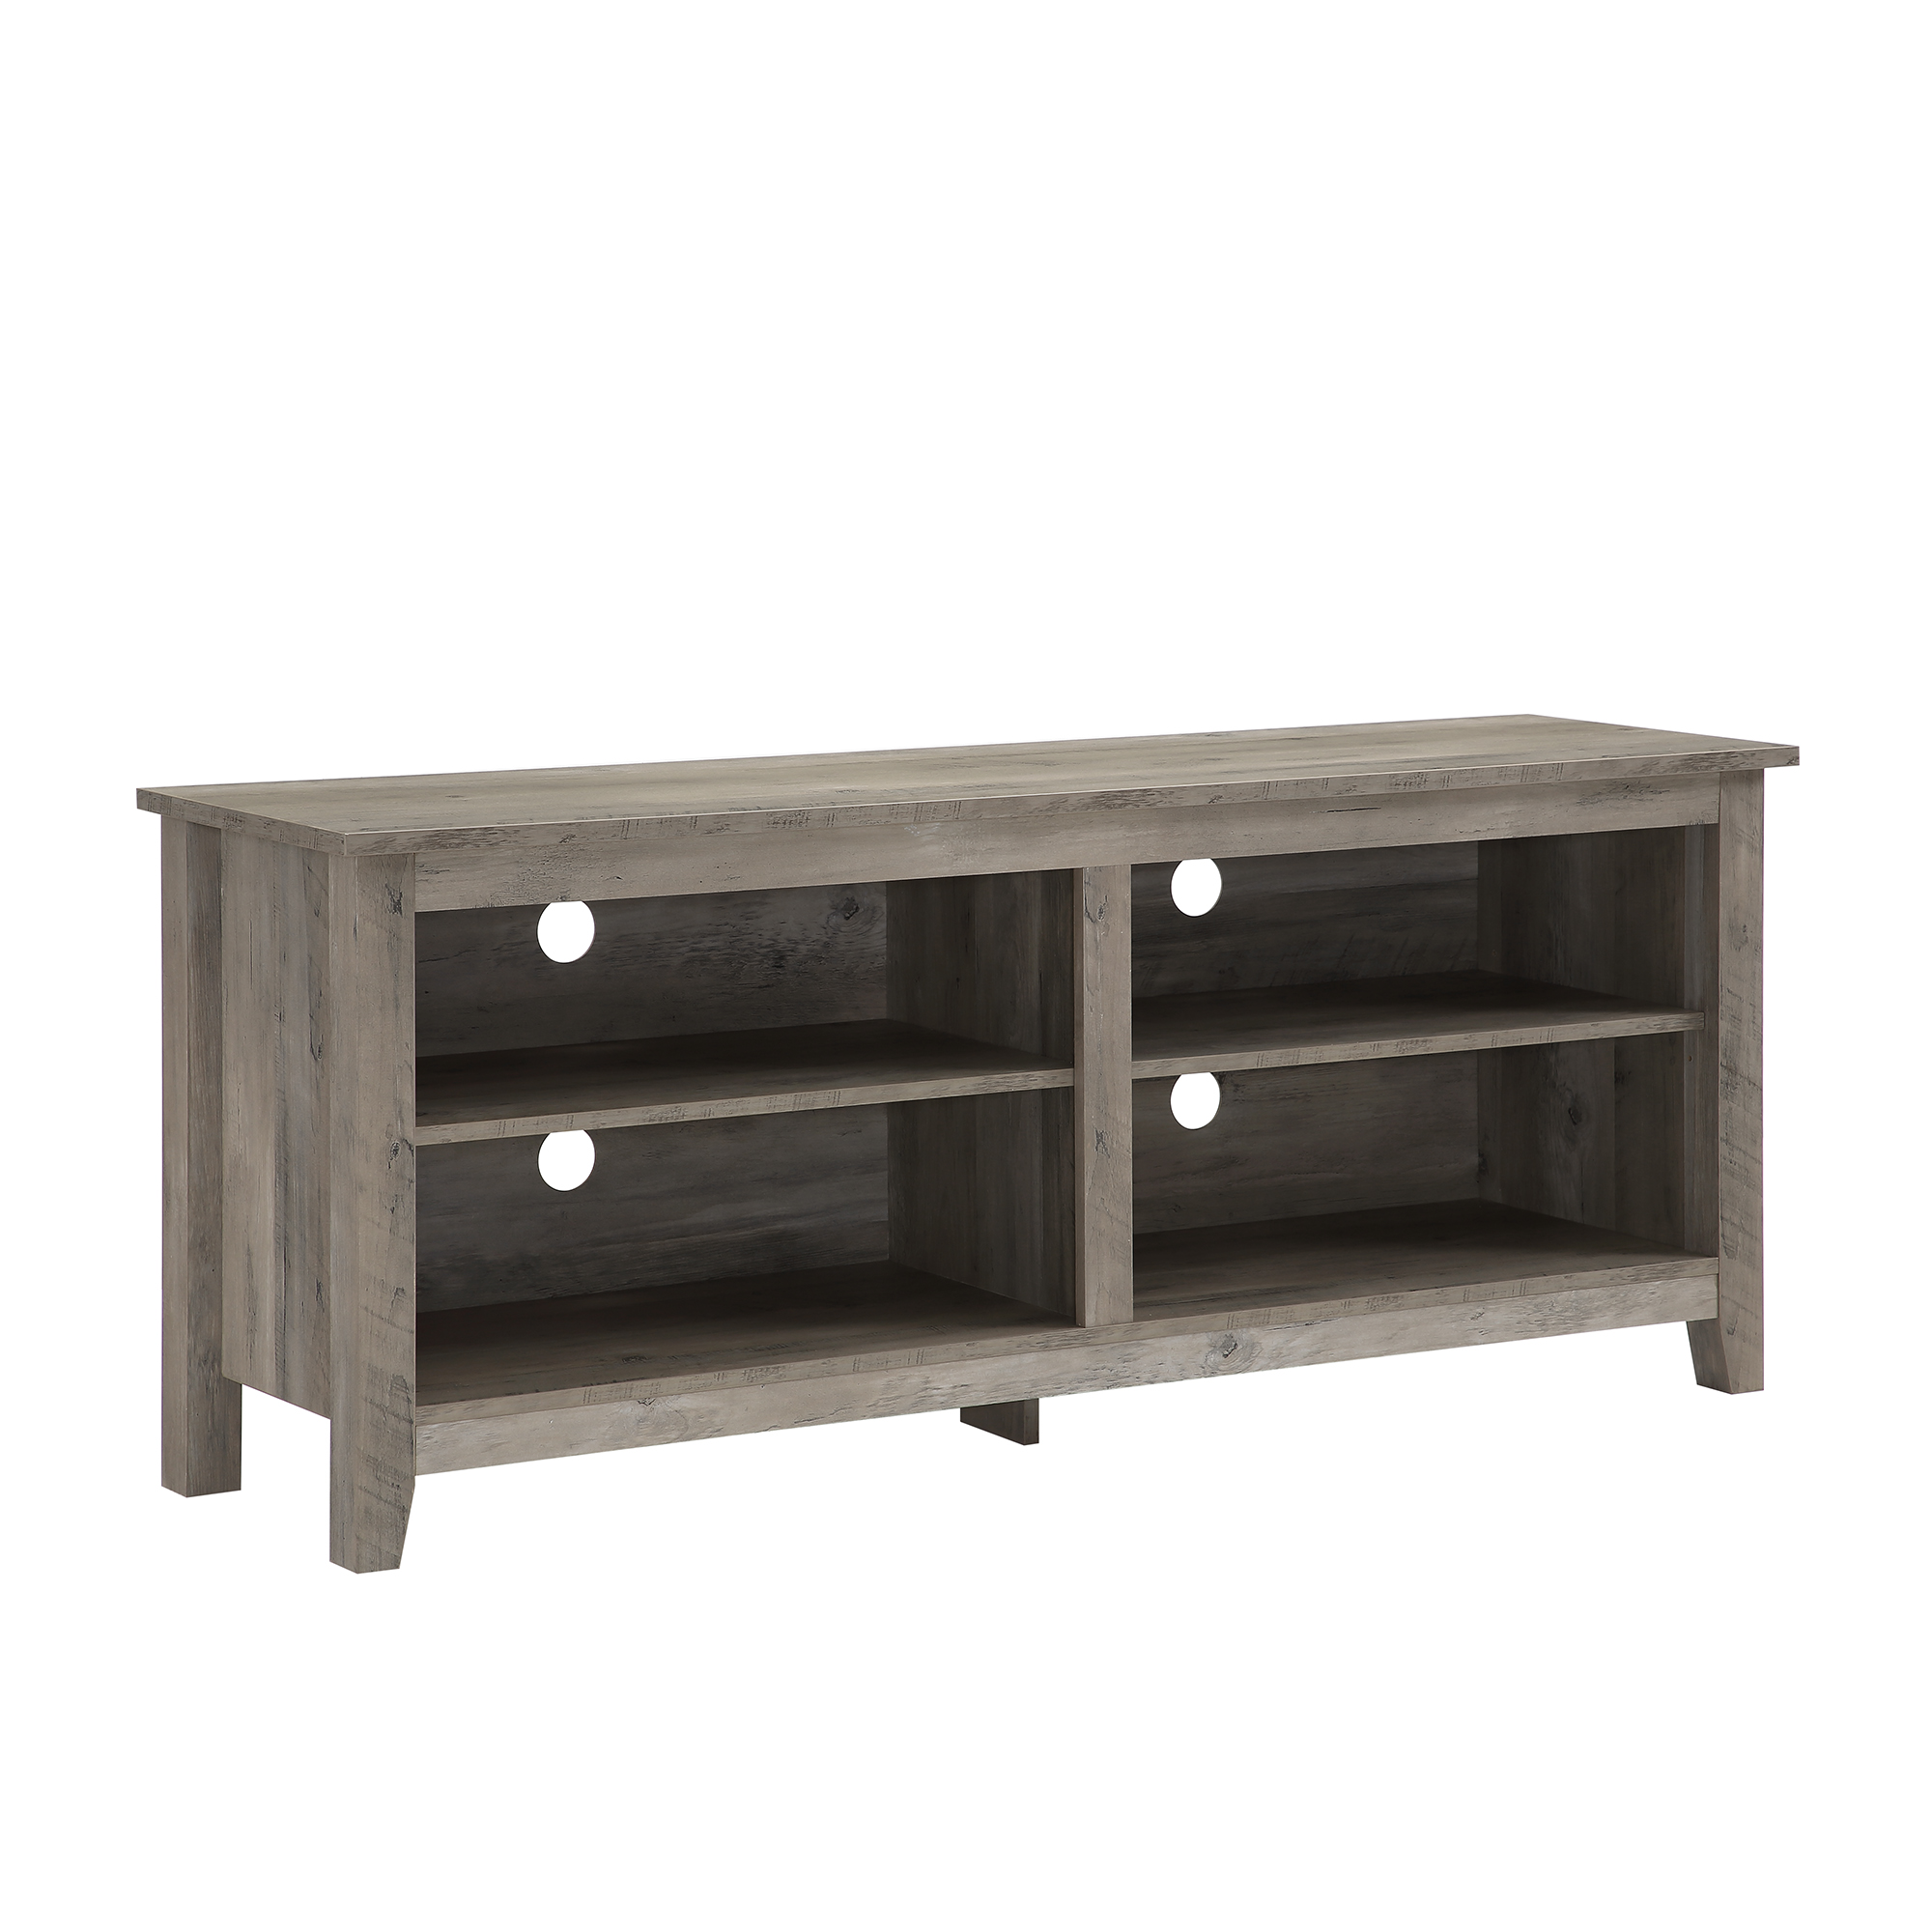 TV Stand 60 Table Wood Rustic Storage Console Living Room